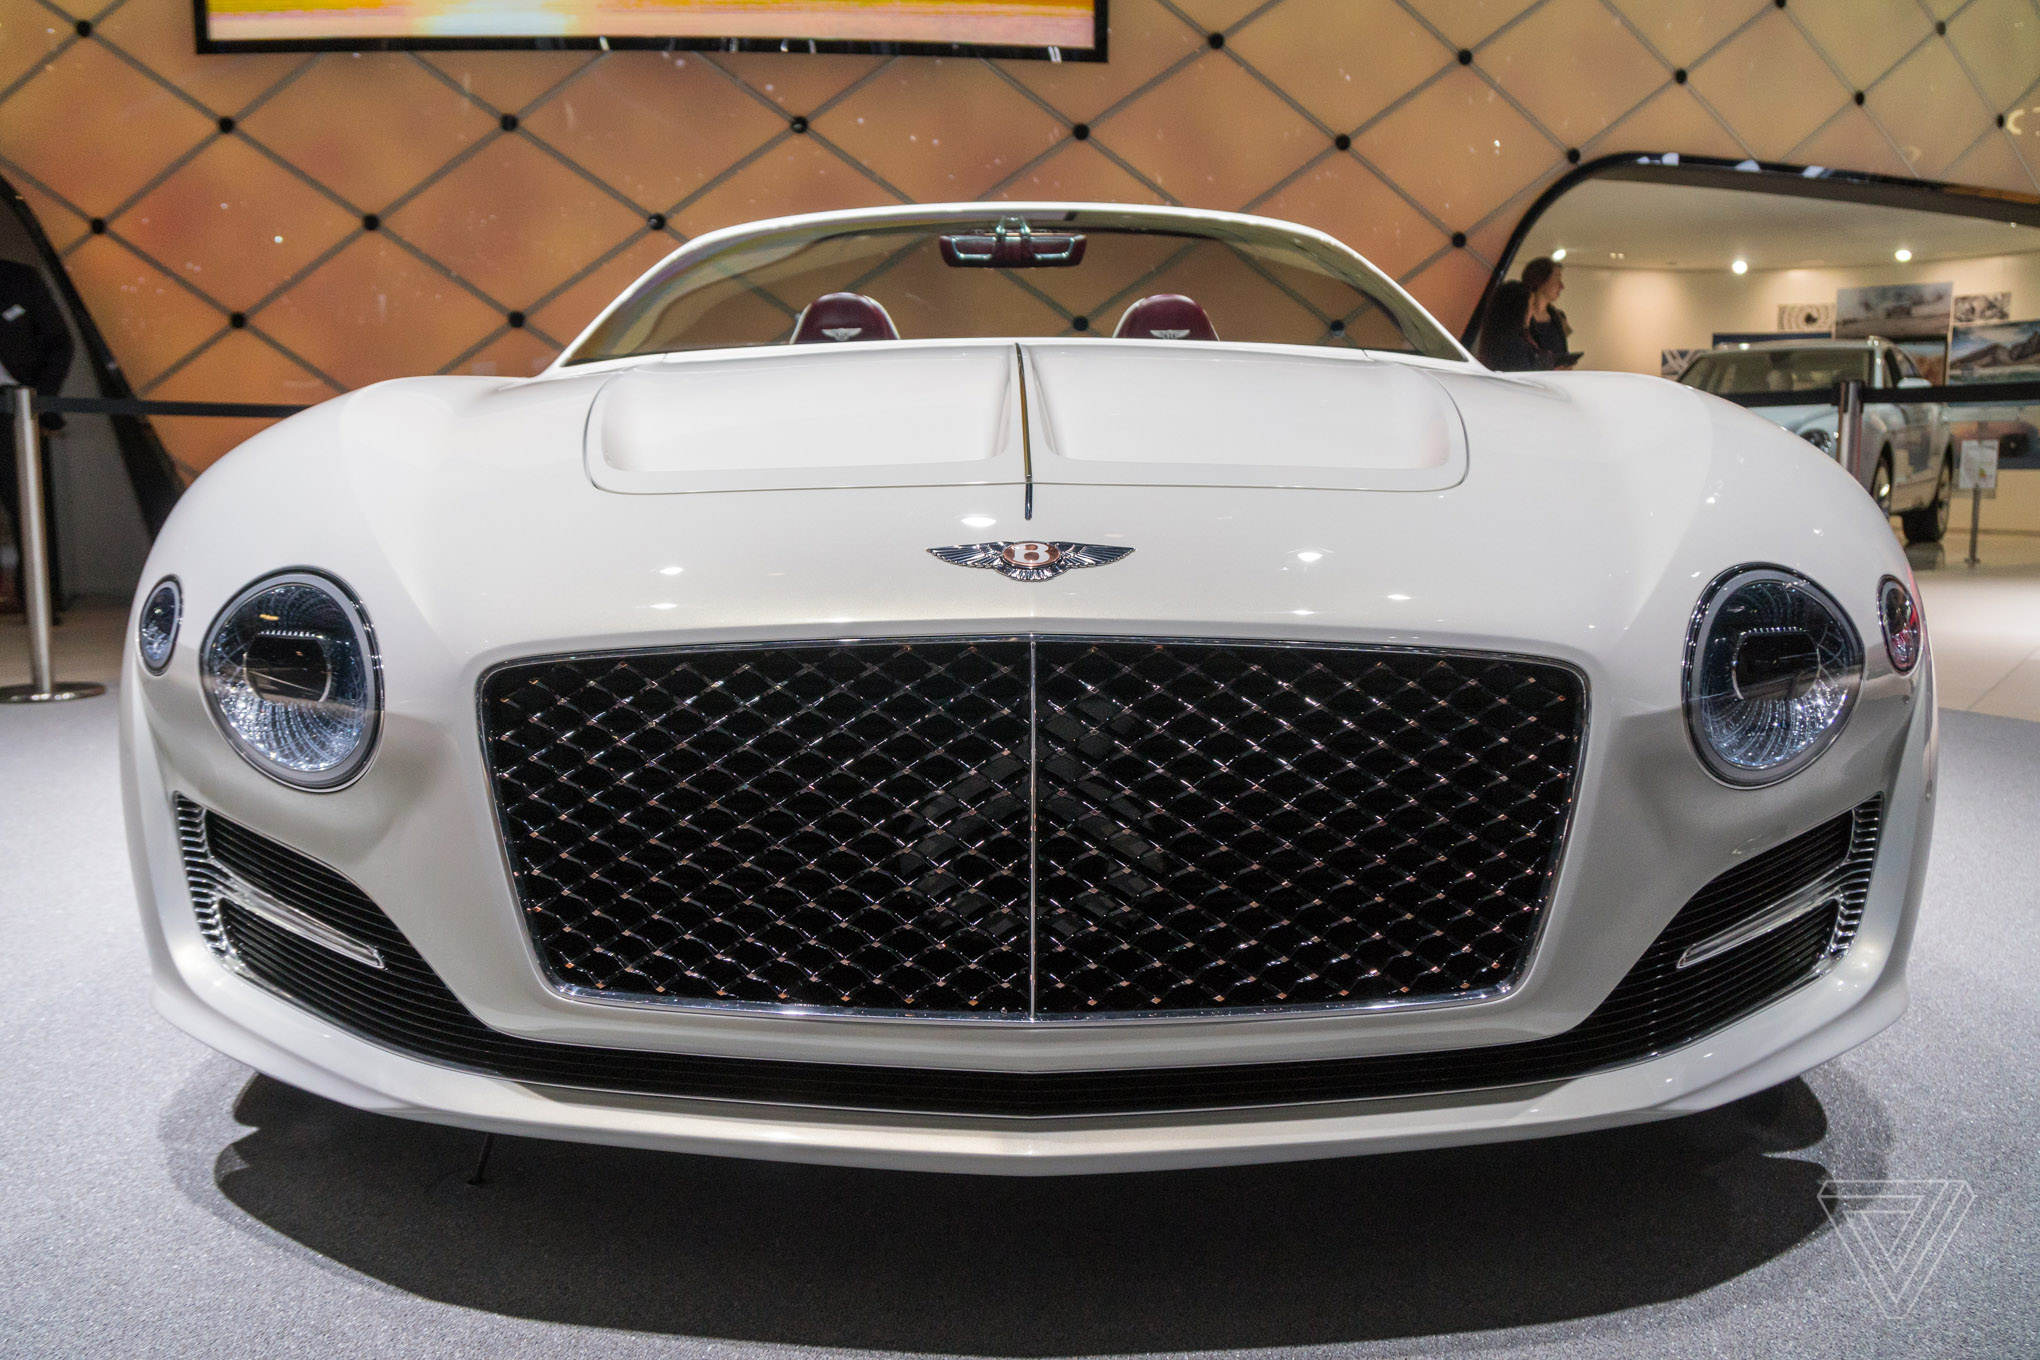 continental car worlds world achieves new seater status four supersports fastest bentley s